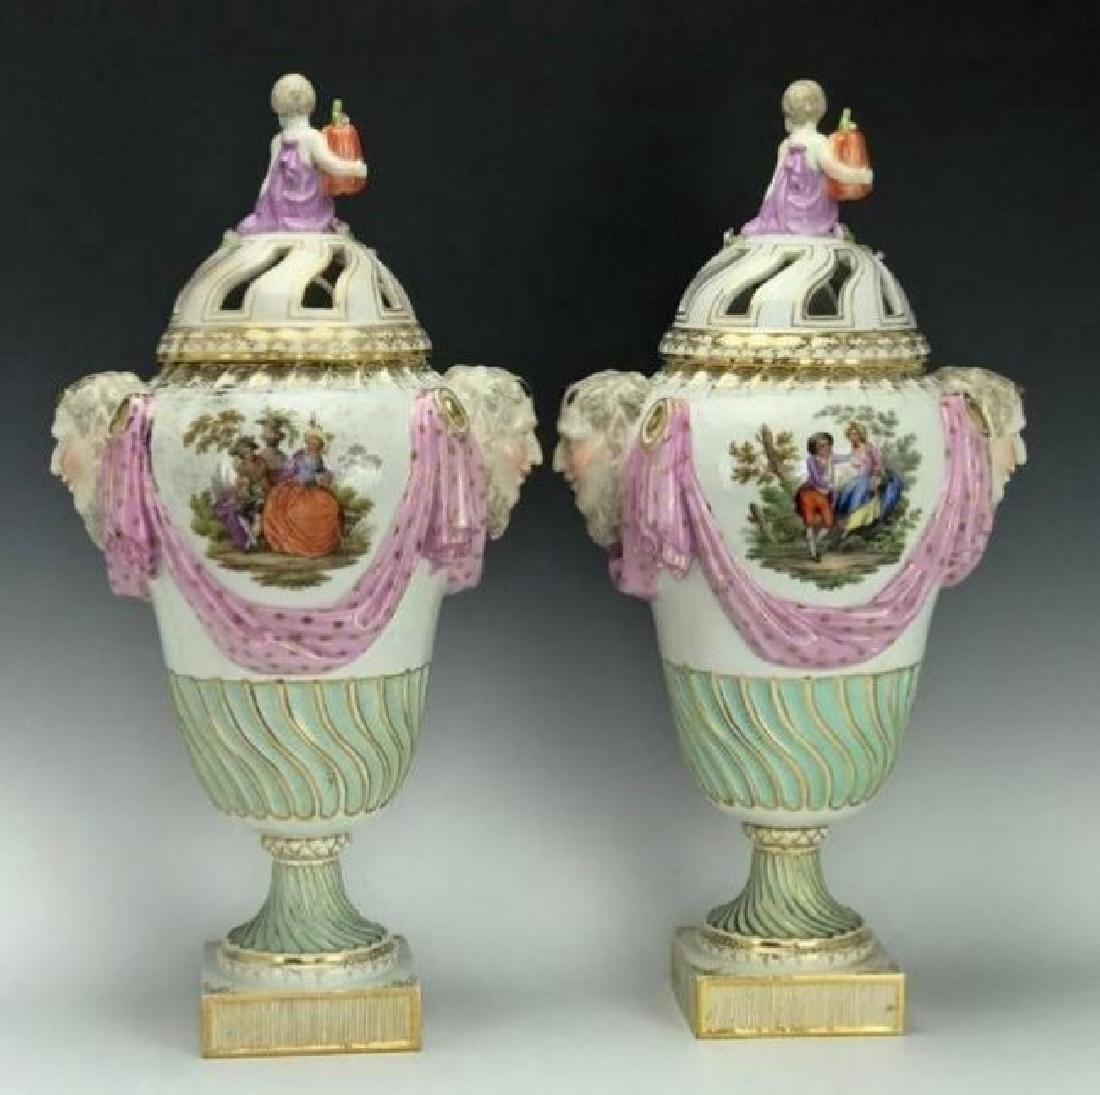 A LARGE PAIR OF 19TH C. ROYAL VIENNA VASES AND COVERS - 3